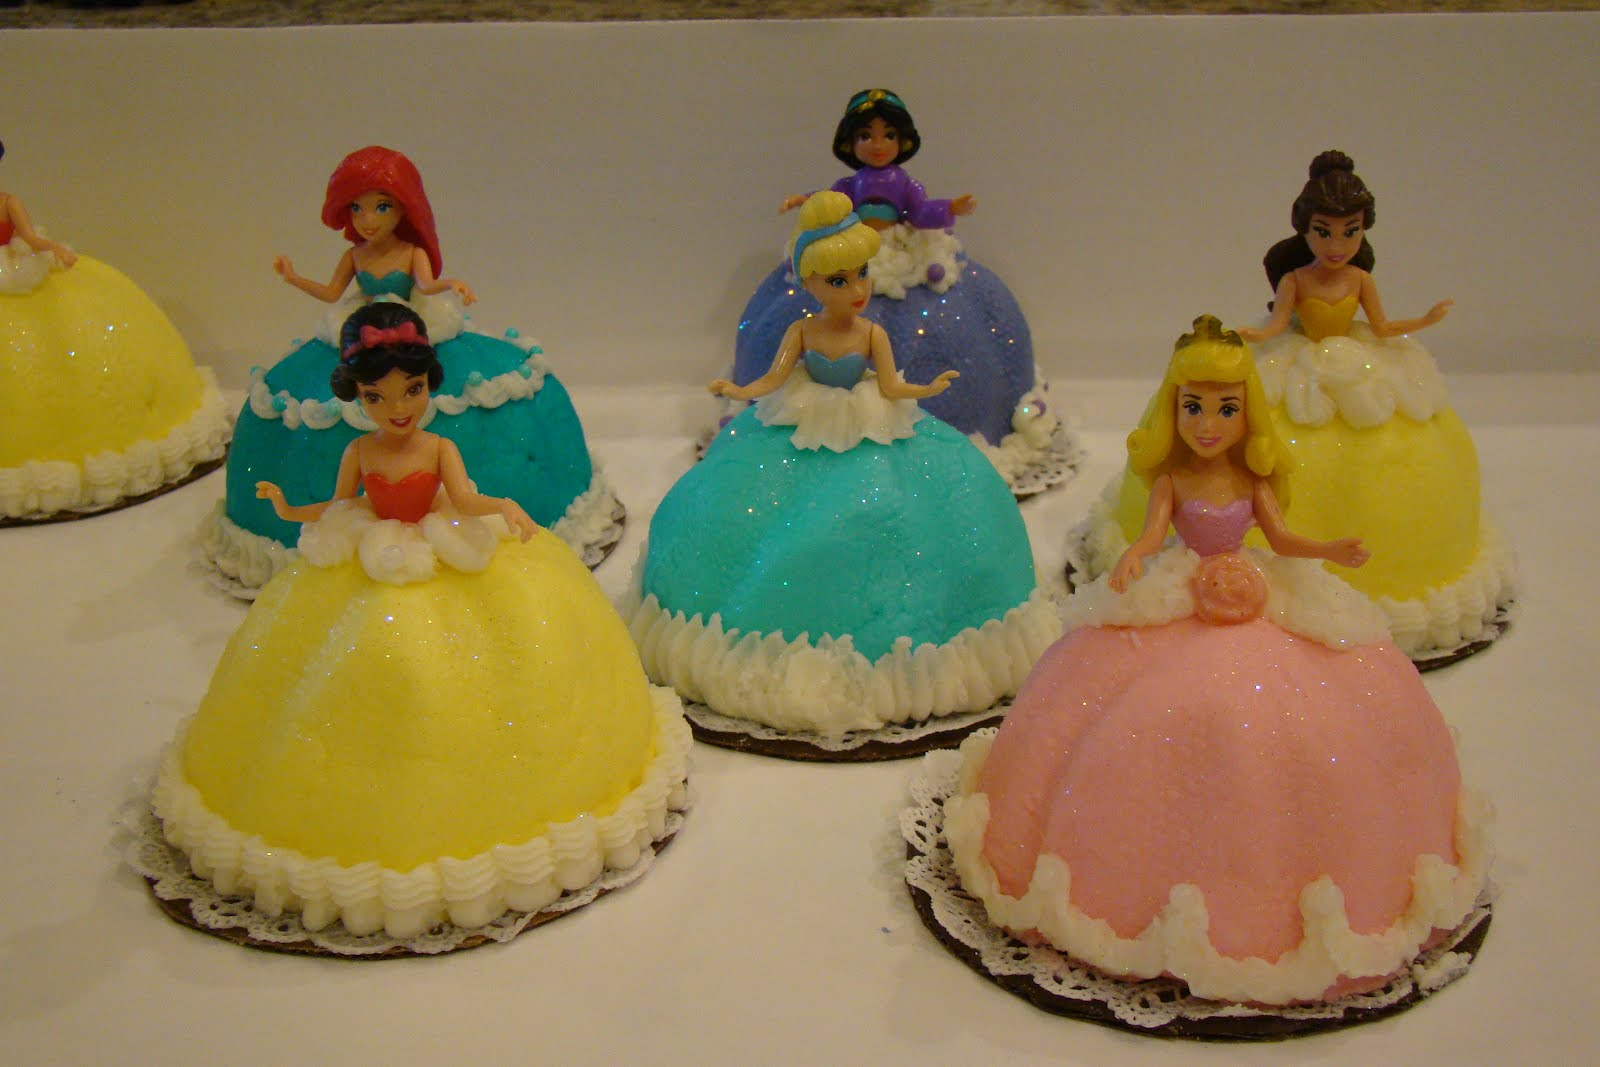 Princess Cupcake Images : Disney Princess Cupcakes - Disney Photo (36996839) - Fanpop